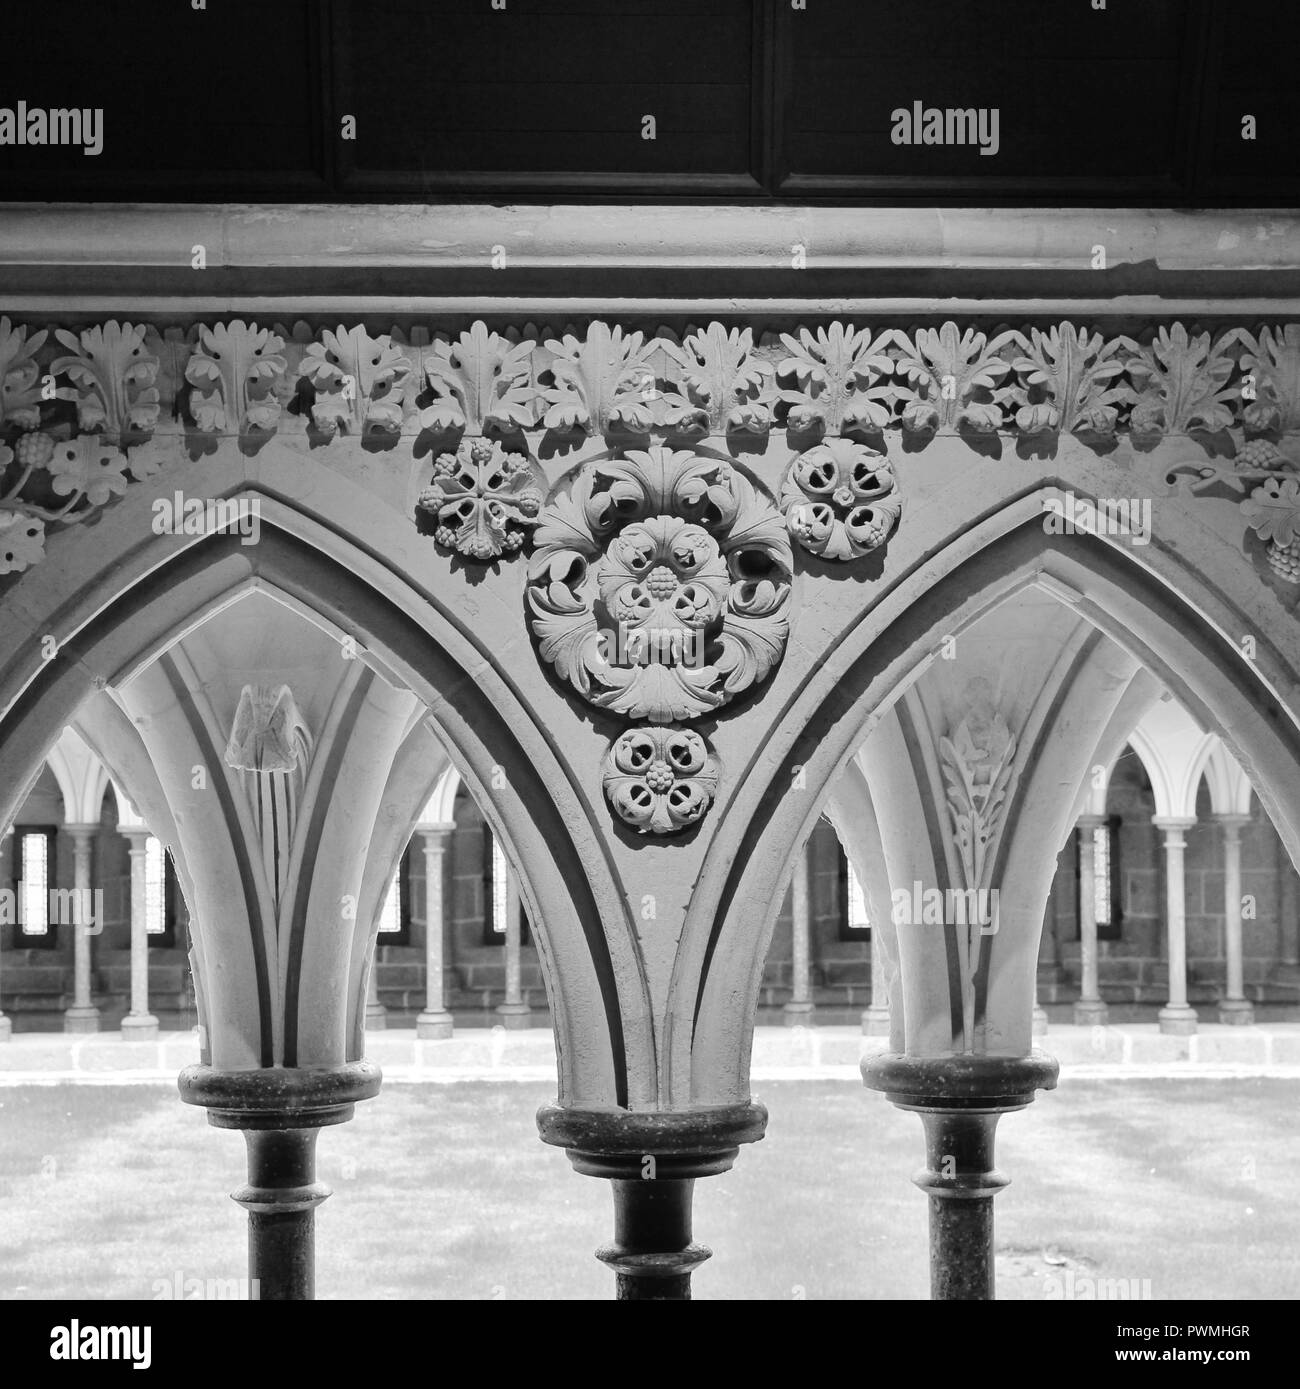 Sculptured arcade. Cloister of the Merveille. Mont St Michel, Normandy, France. - Stock Image